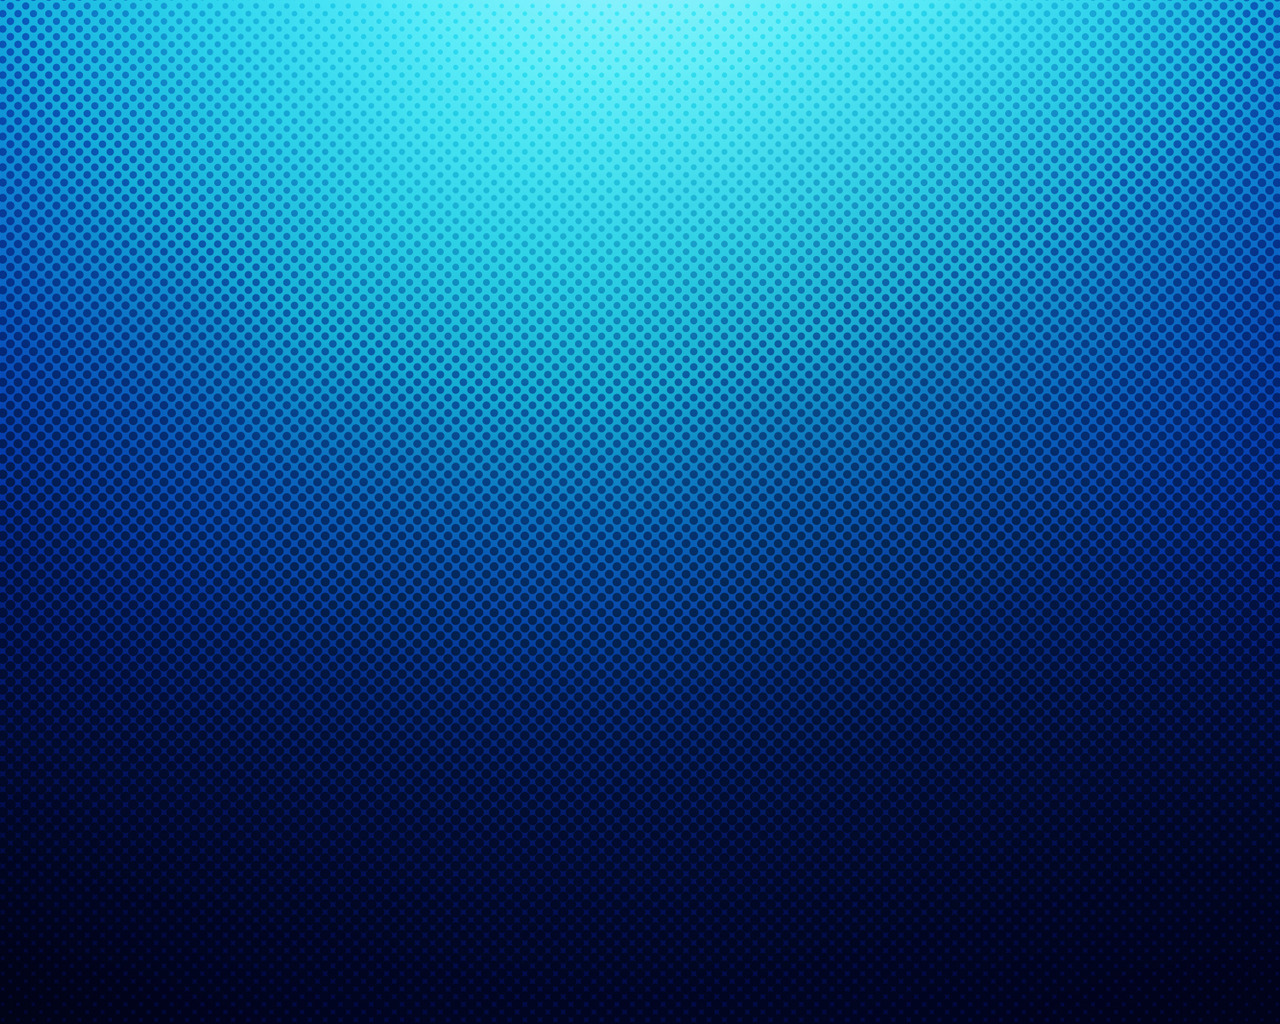 blue-minimal-doted